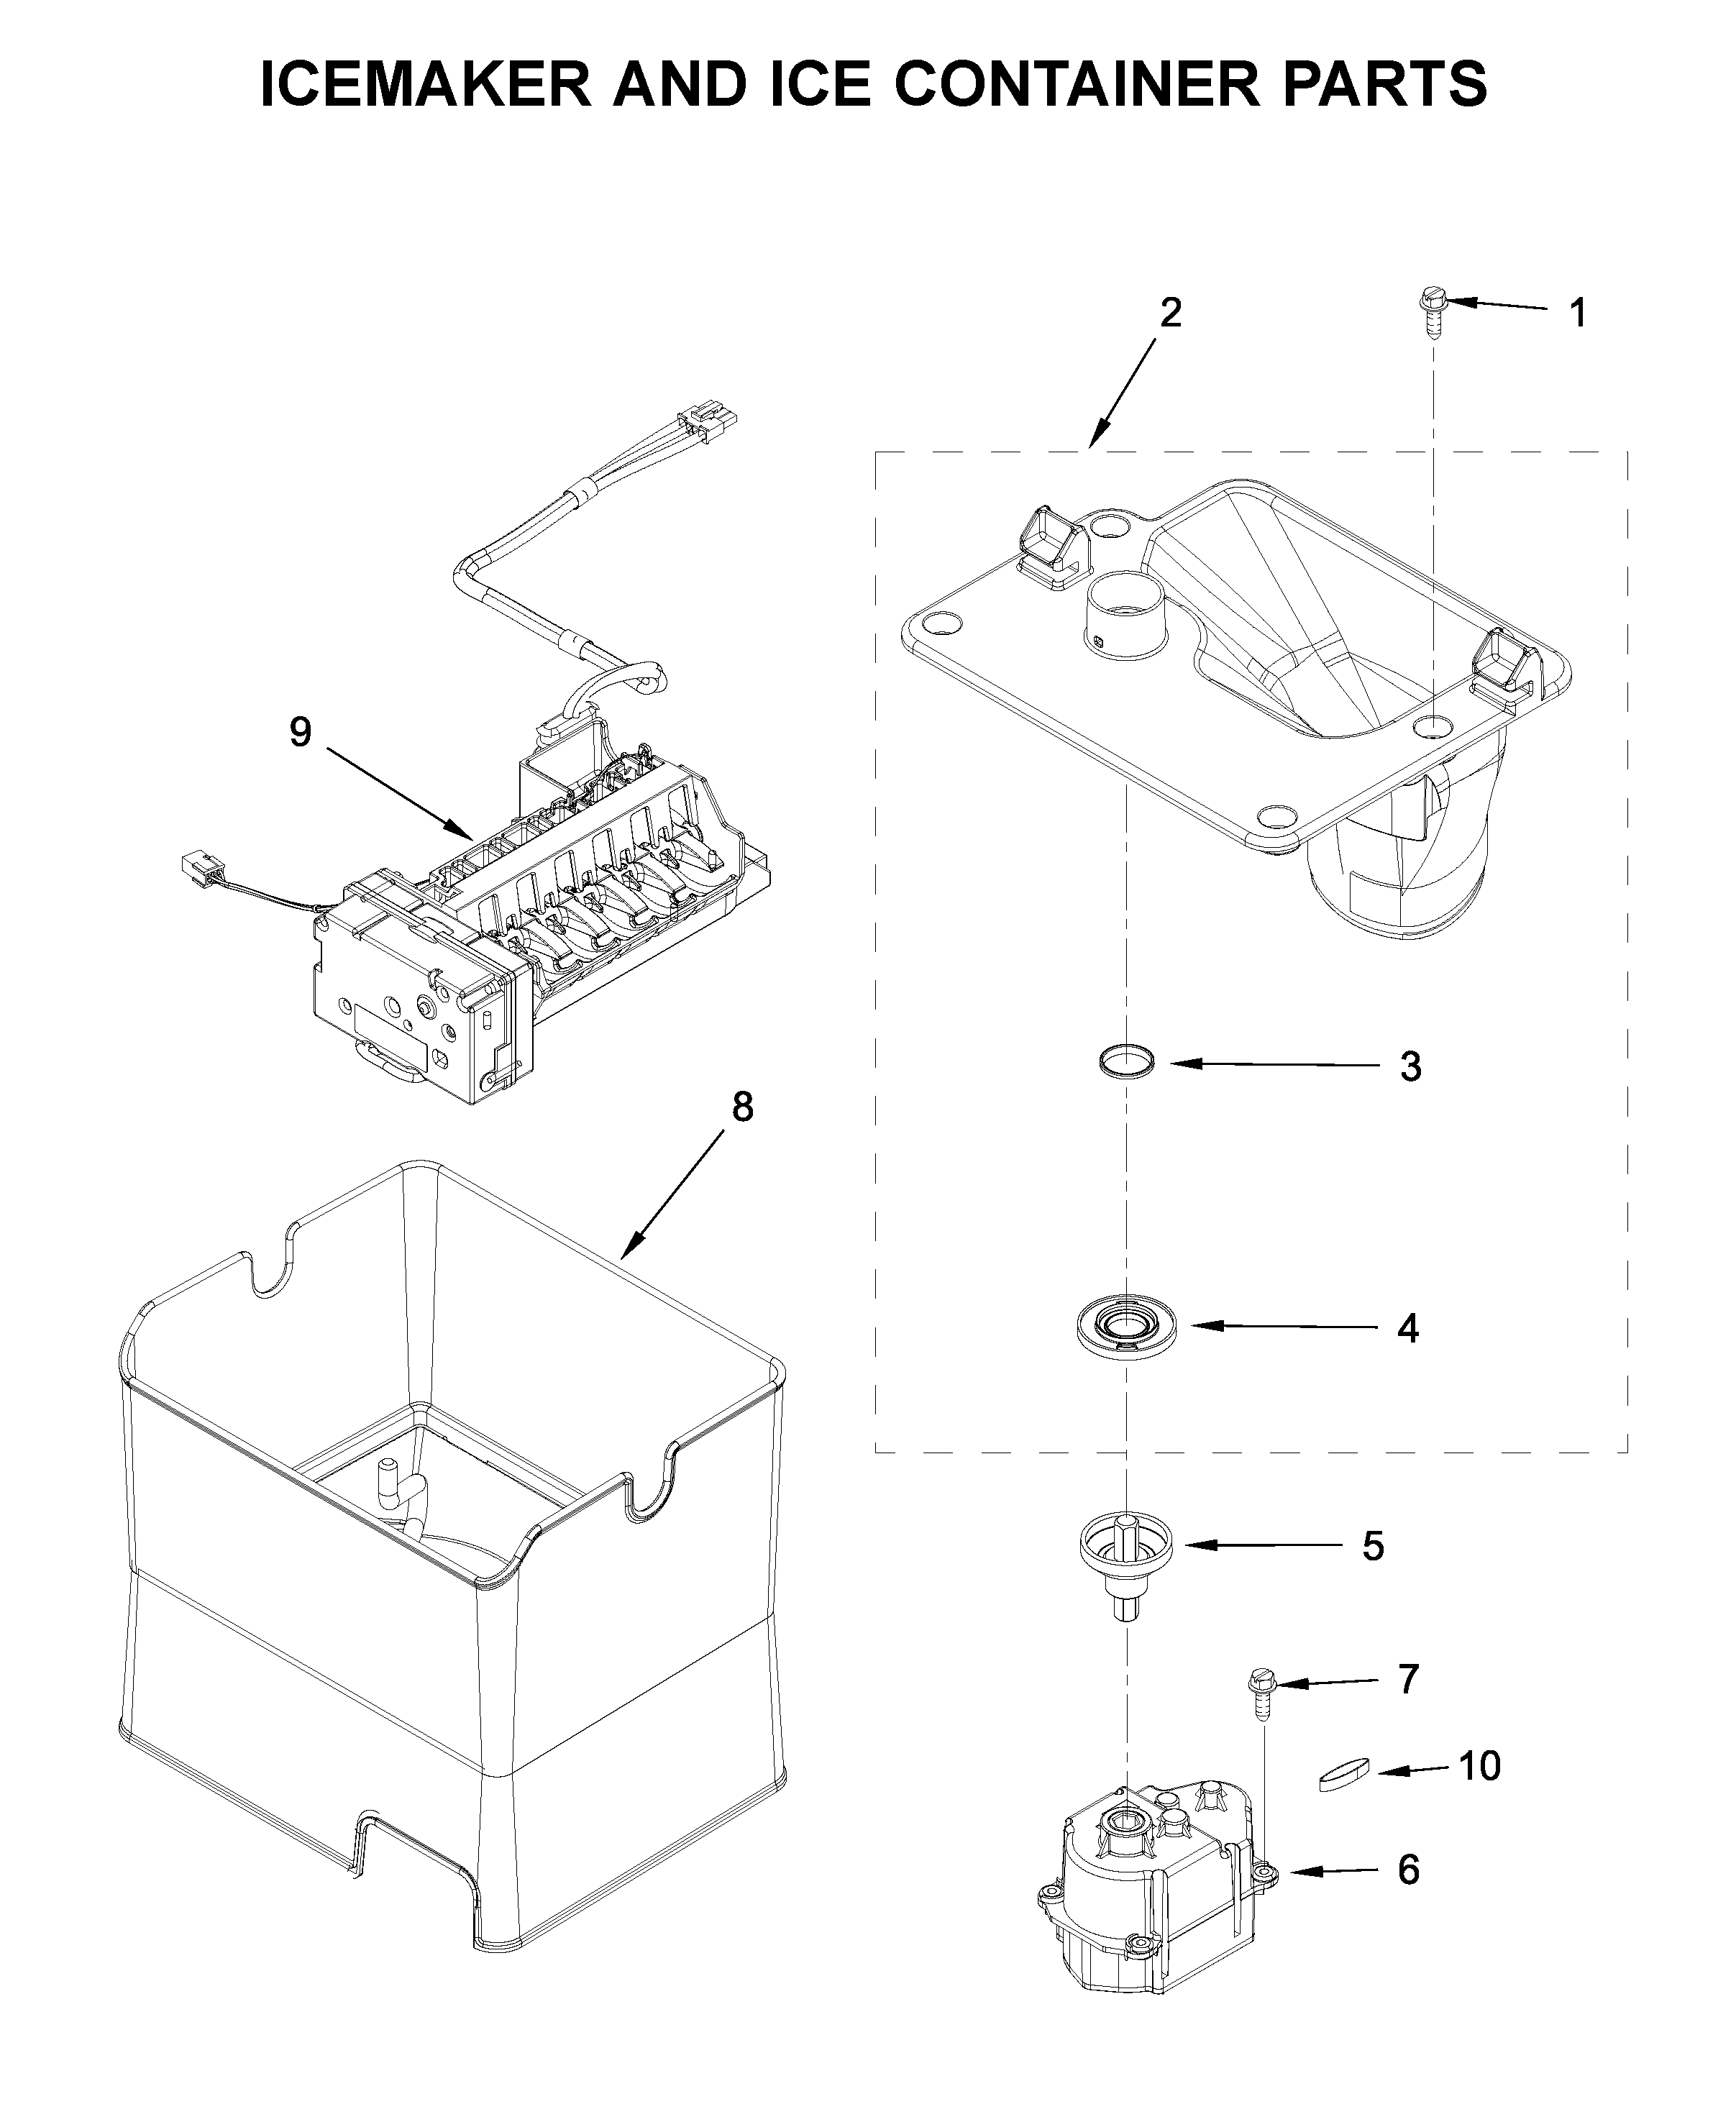 Whirlpool WRF757SDHZ02 icemaker and ice container parts diagram